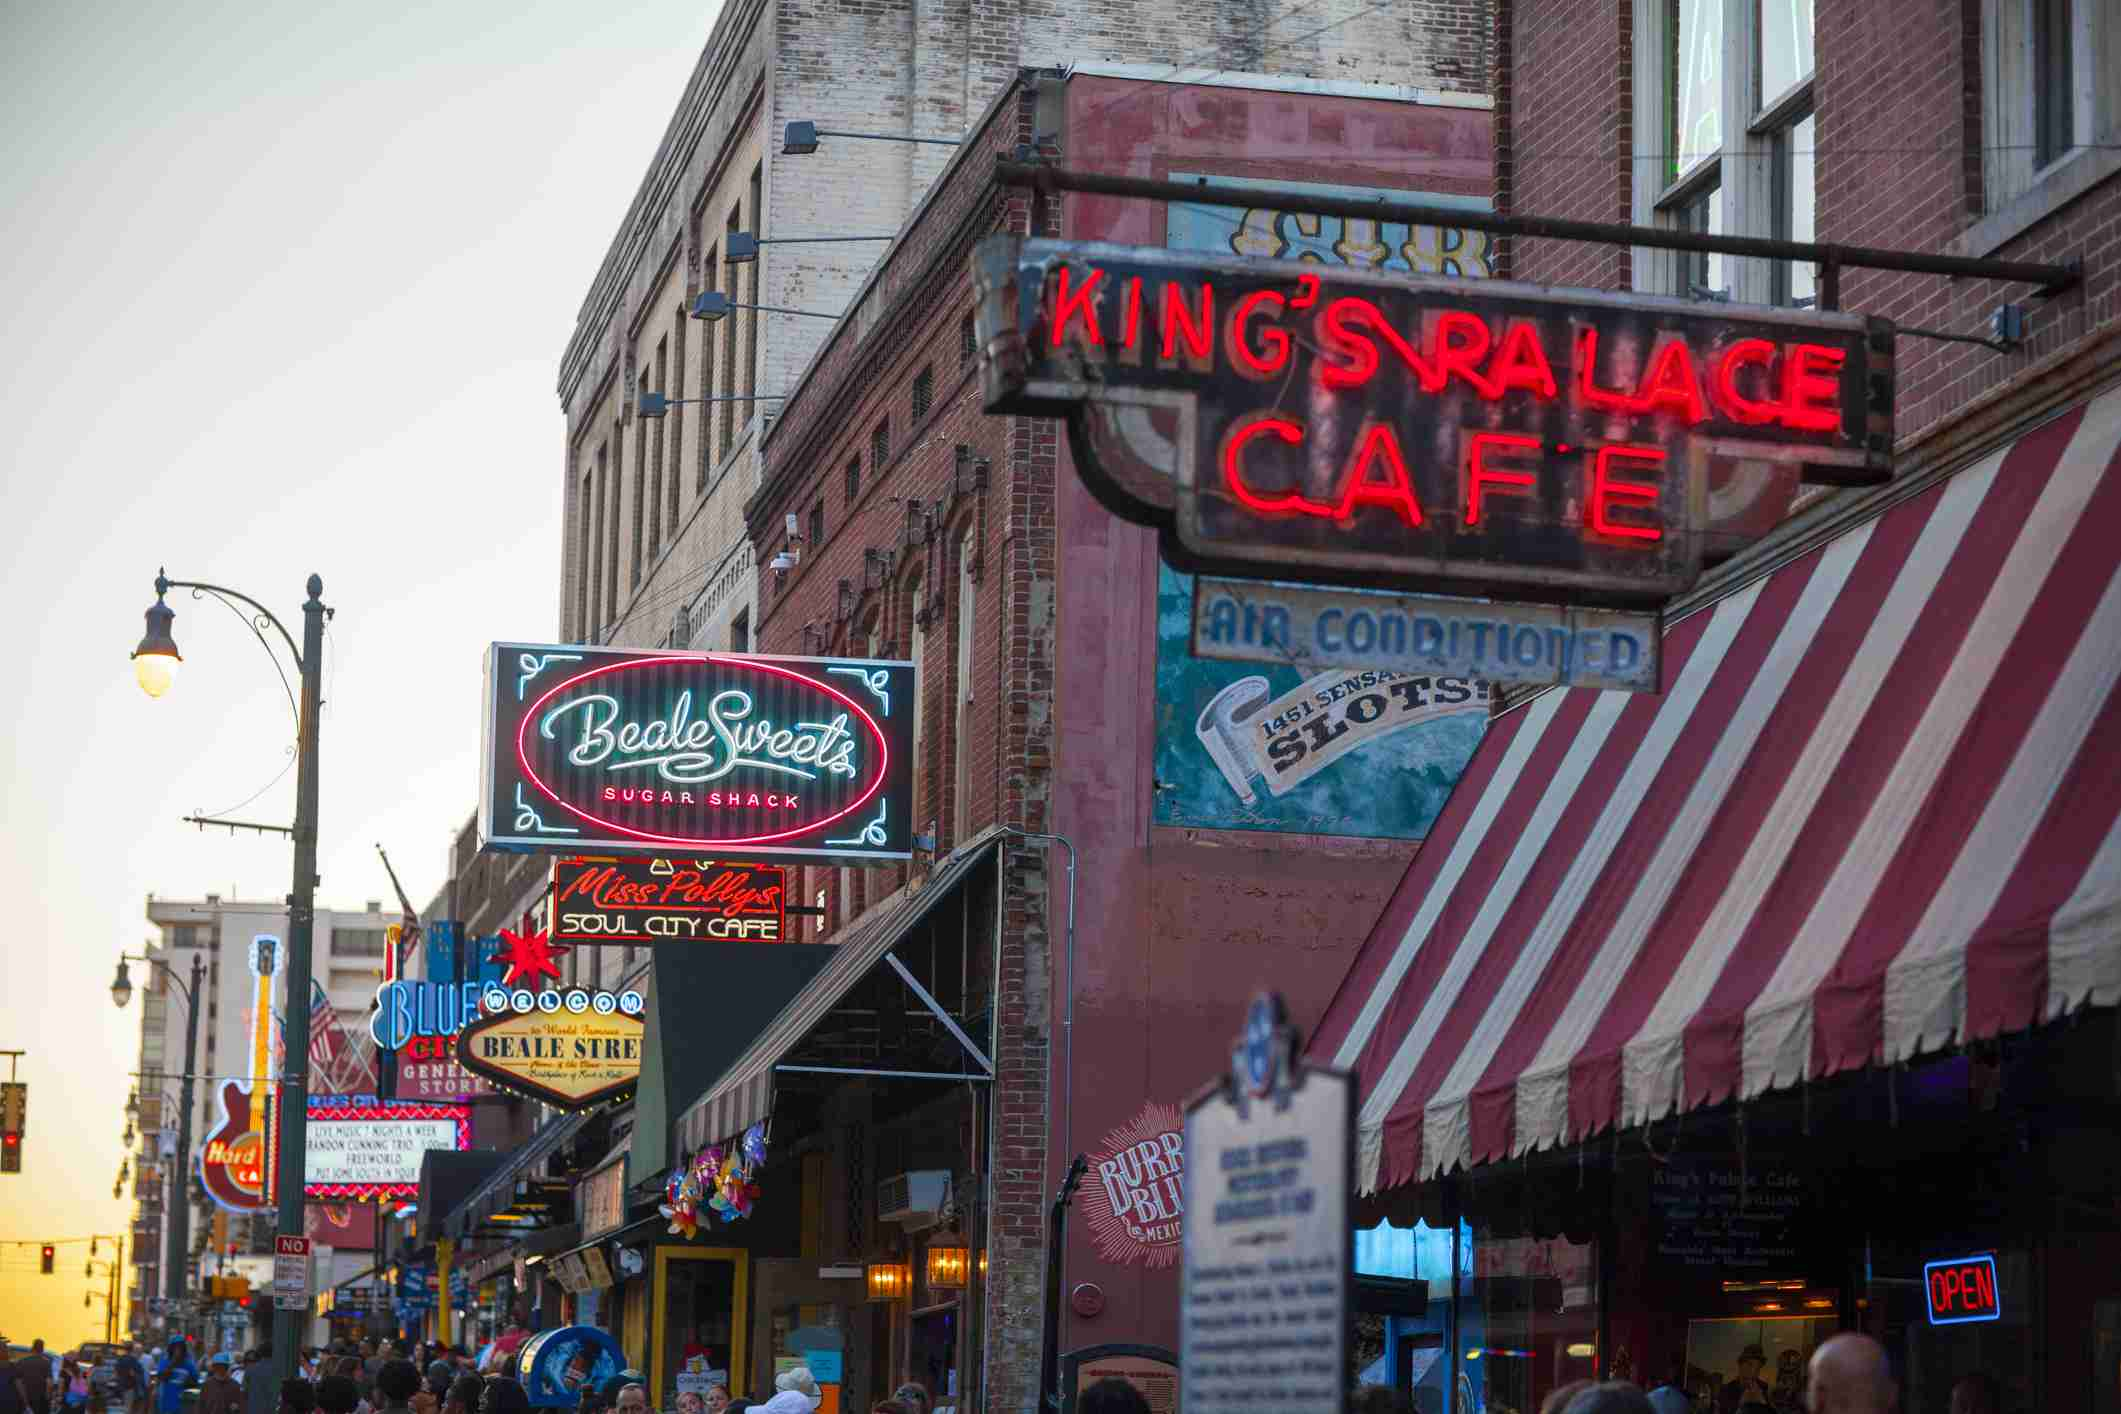 King's Palace Cafe on Beale Street, Memphis